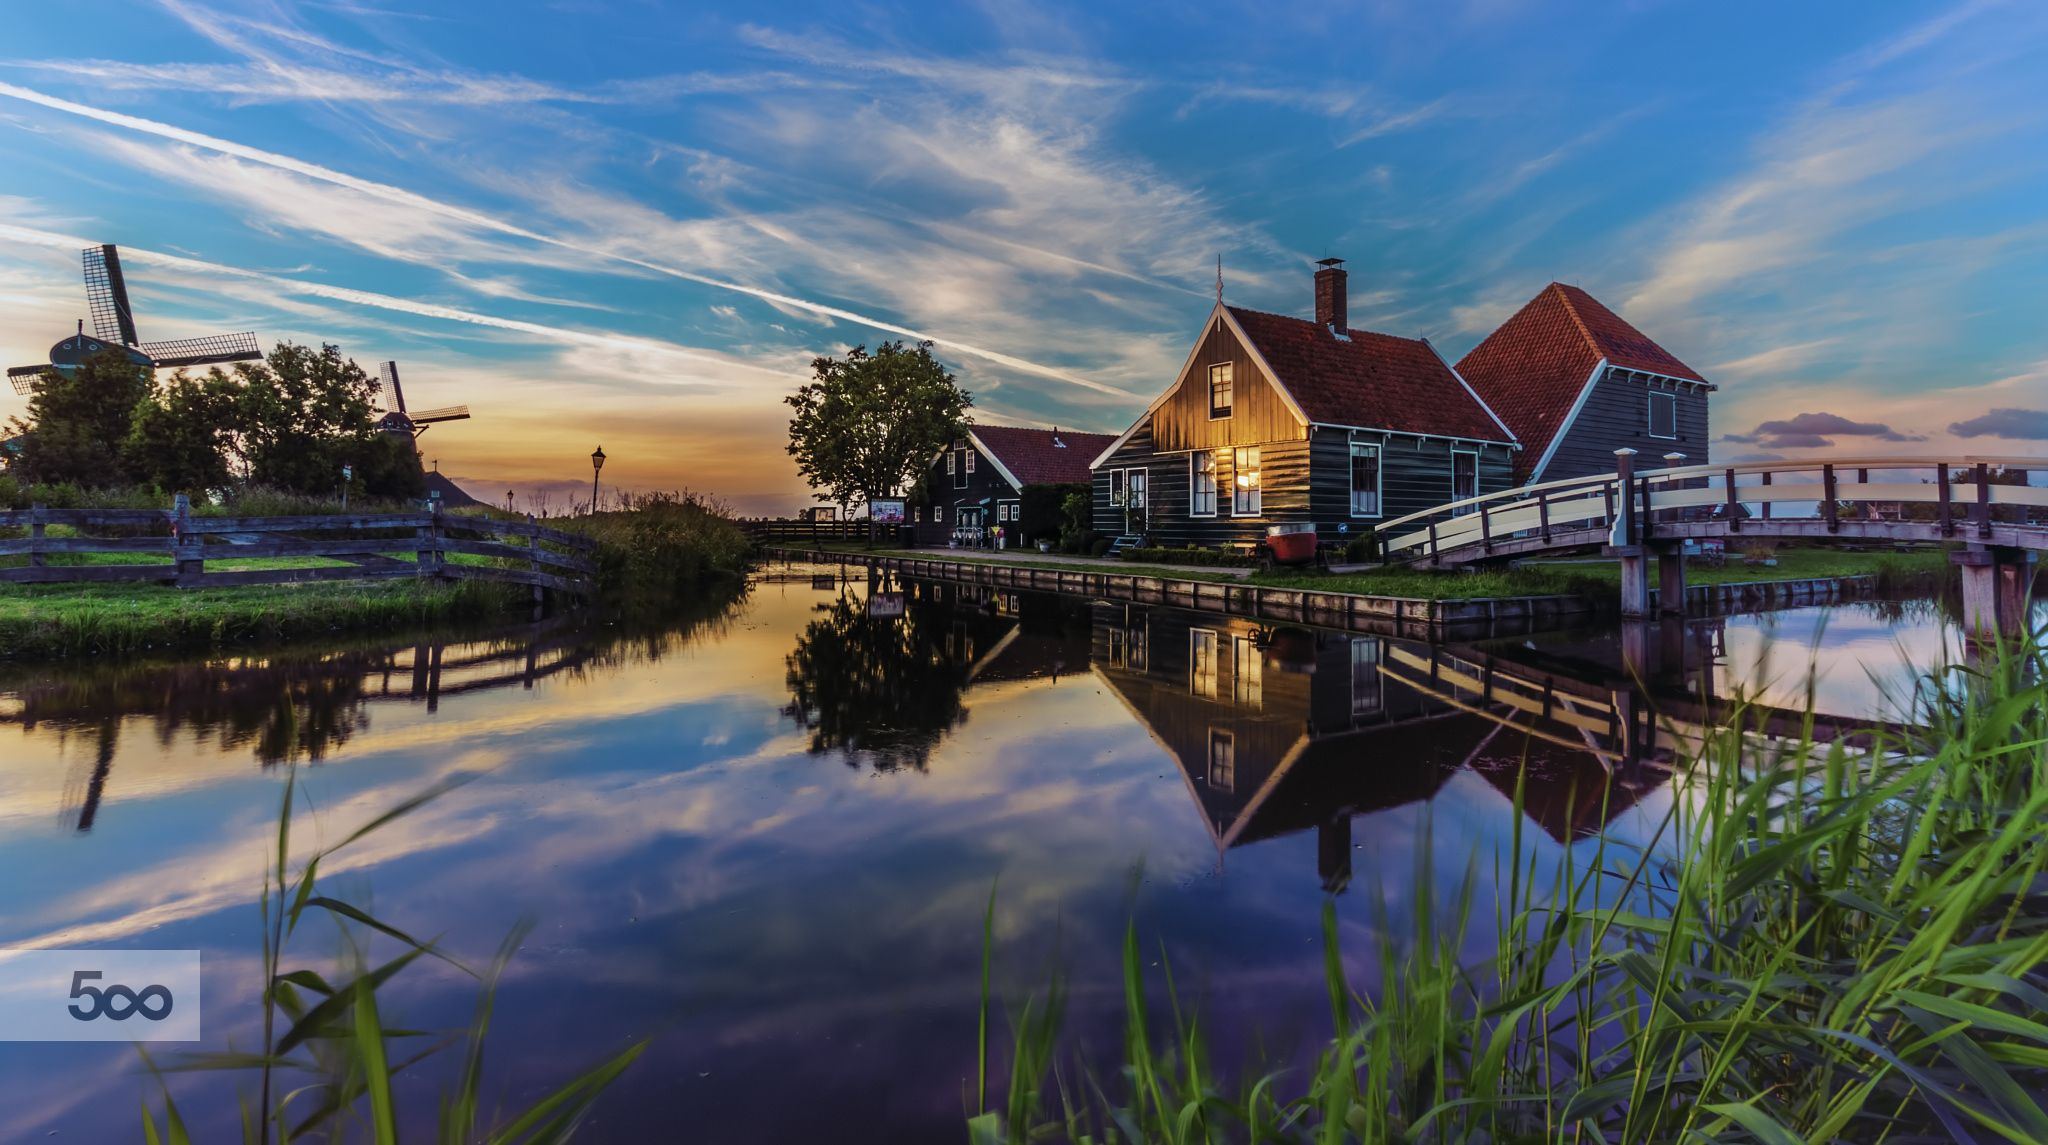 Photograph Zaanse Schans Holland By Remo Scarfo On 500px Landscape Photography City Architecture House